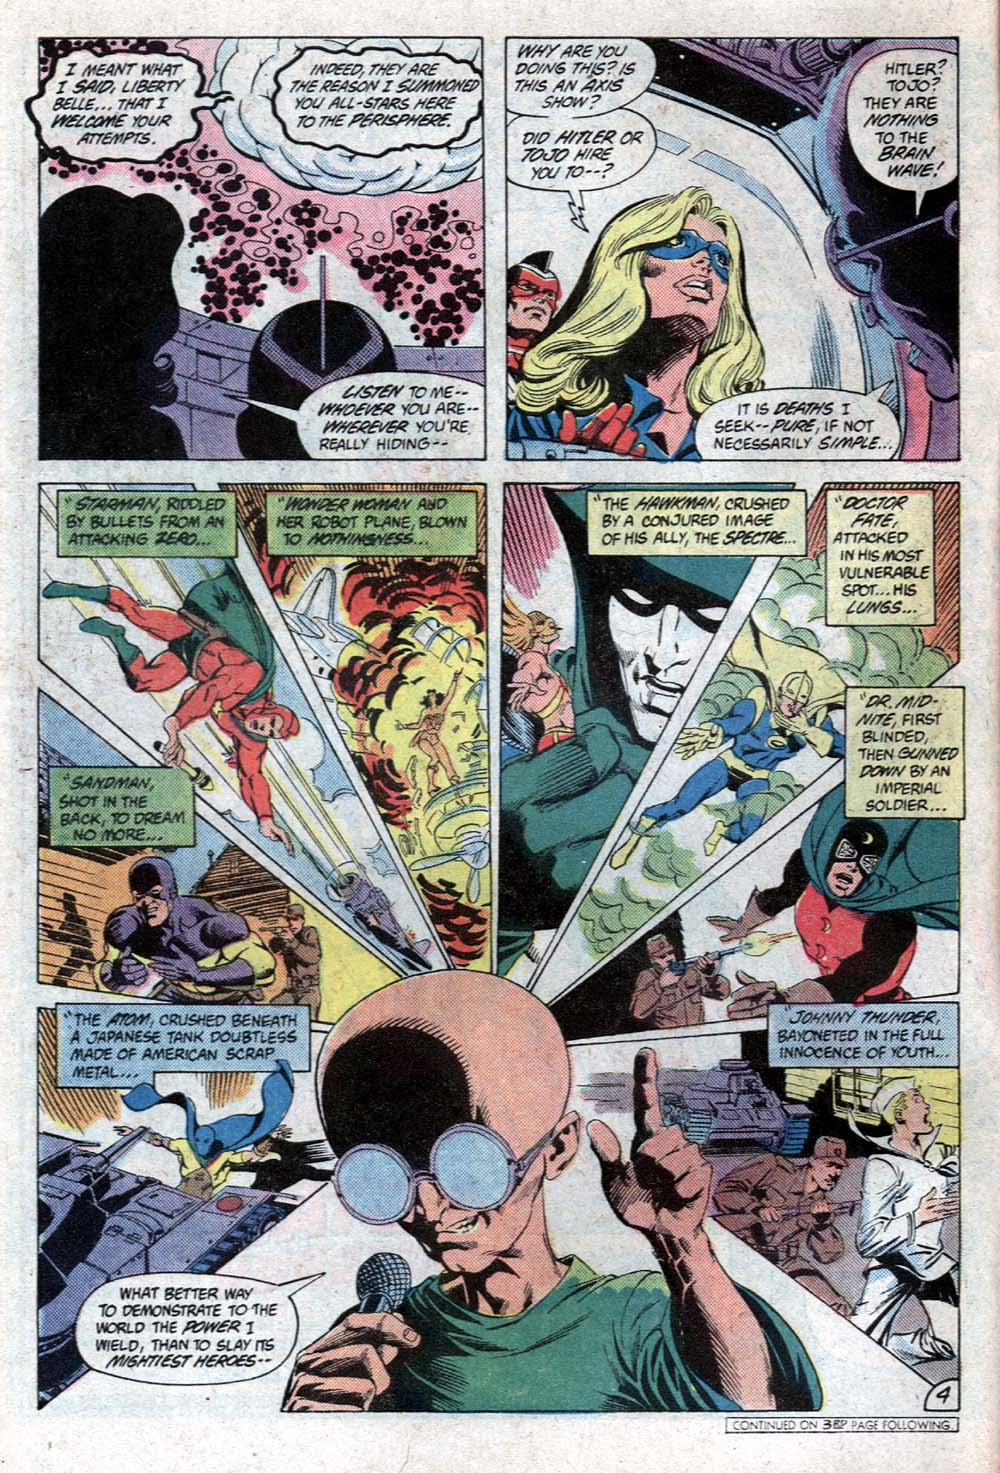 Read online All-Star Squadron comic -  Issue #20 - 7